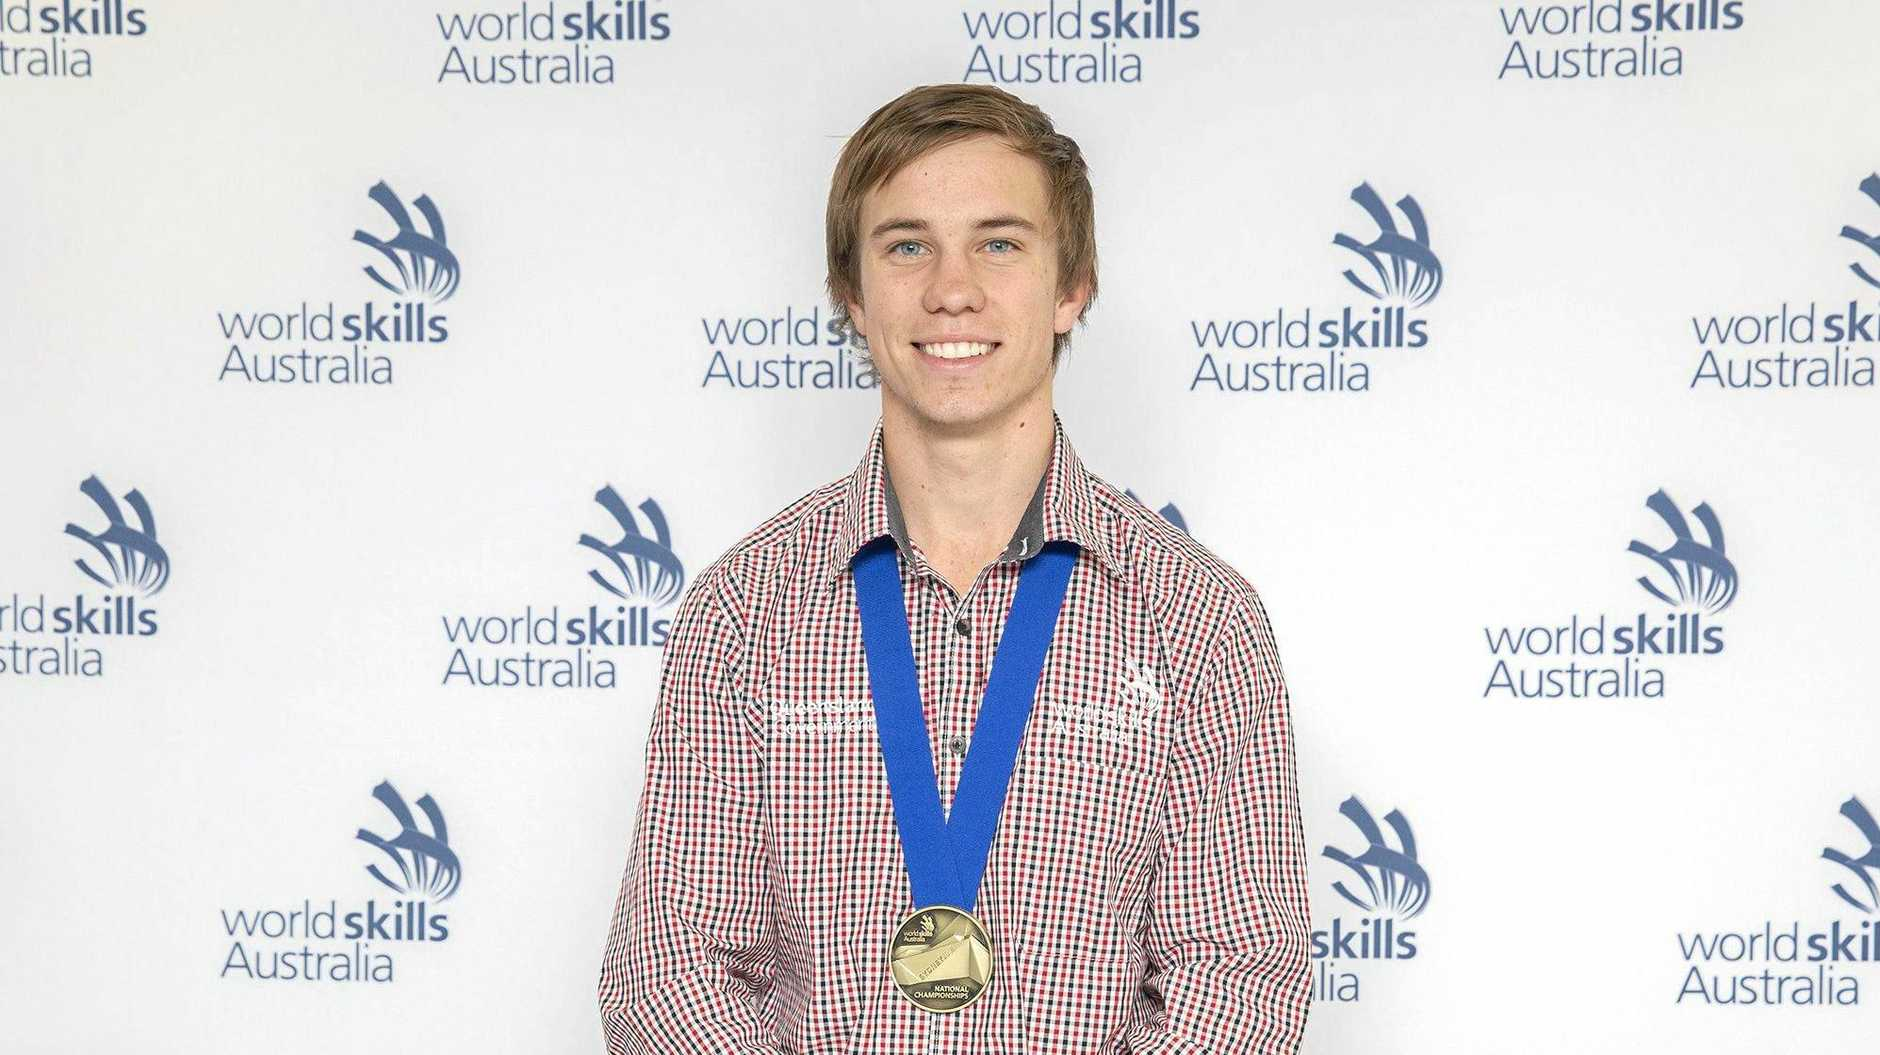 HIGH ACHIEVER: Pie Creek apprentice Patrick Brennan poses with his WorldSkills Australia gold medal at the national championships in Sydney.